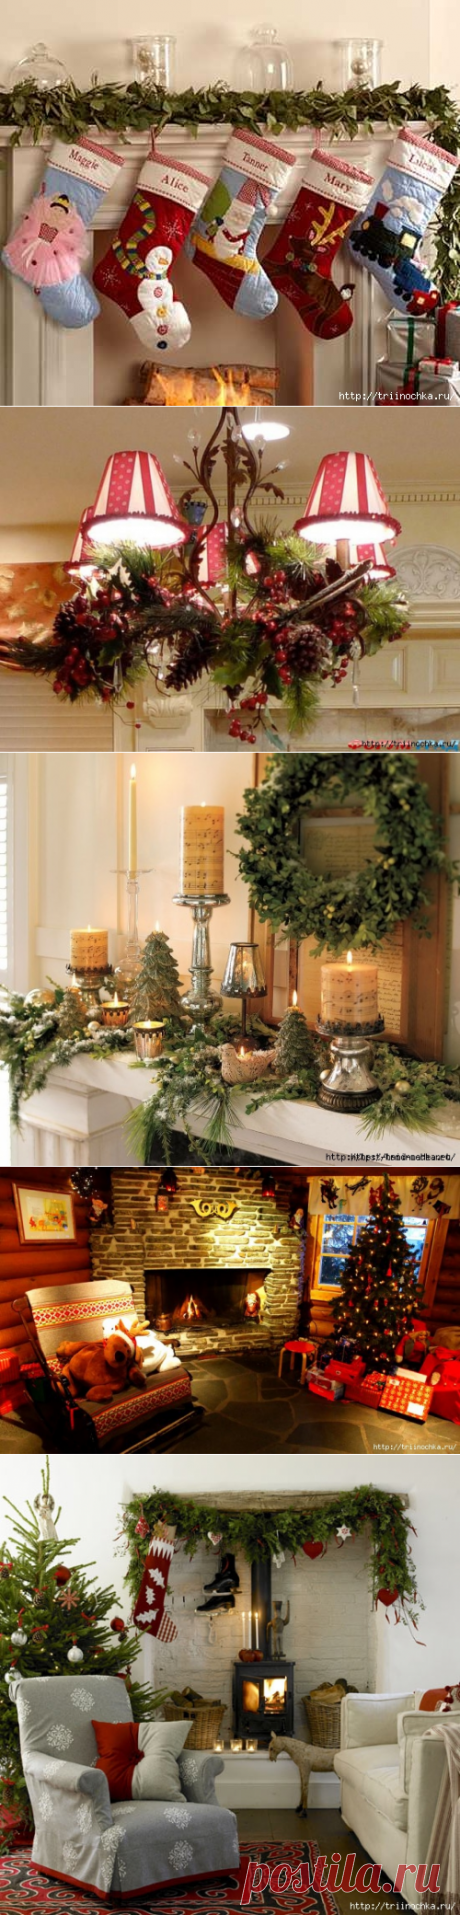 We decorate the house by New year! Ideas new and interesting!